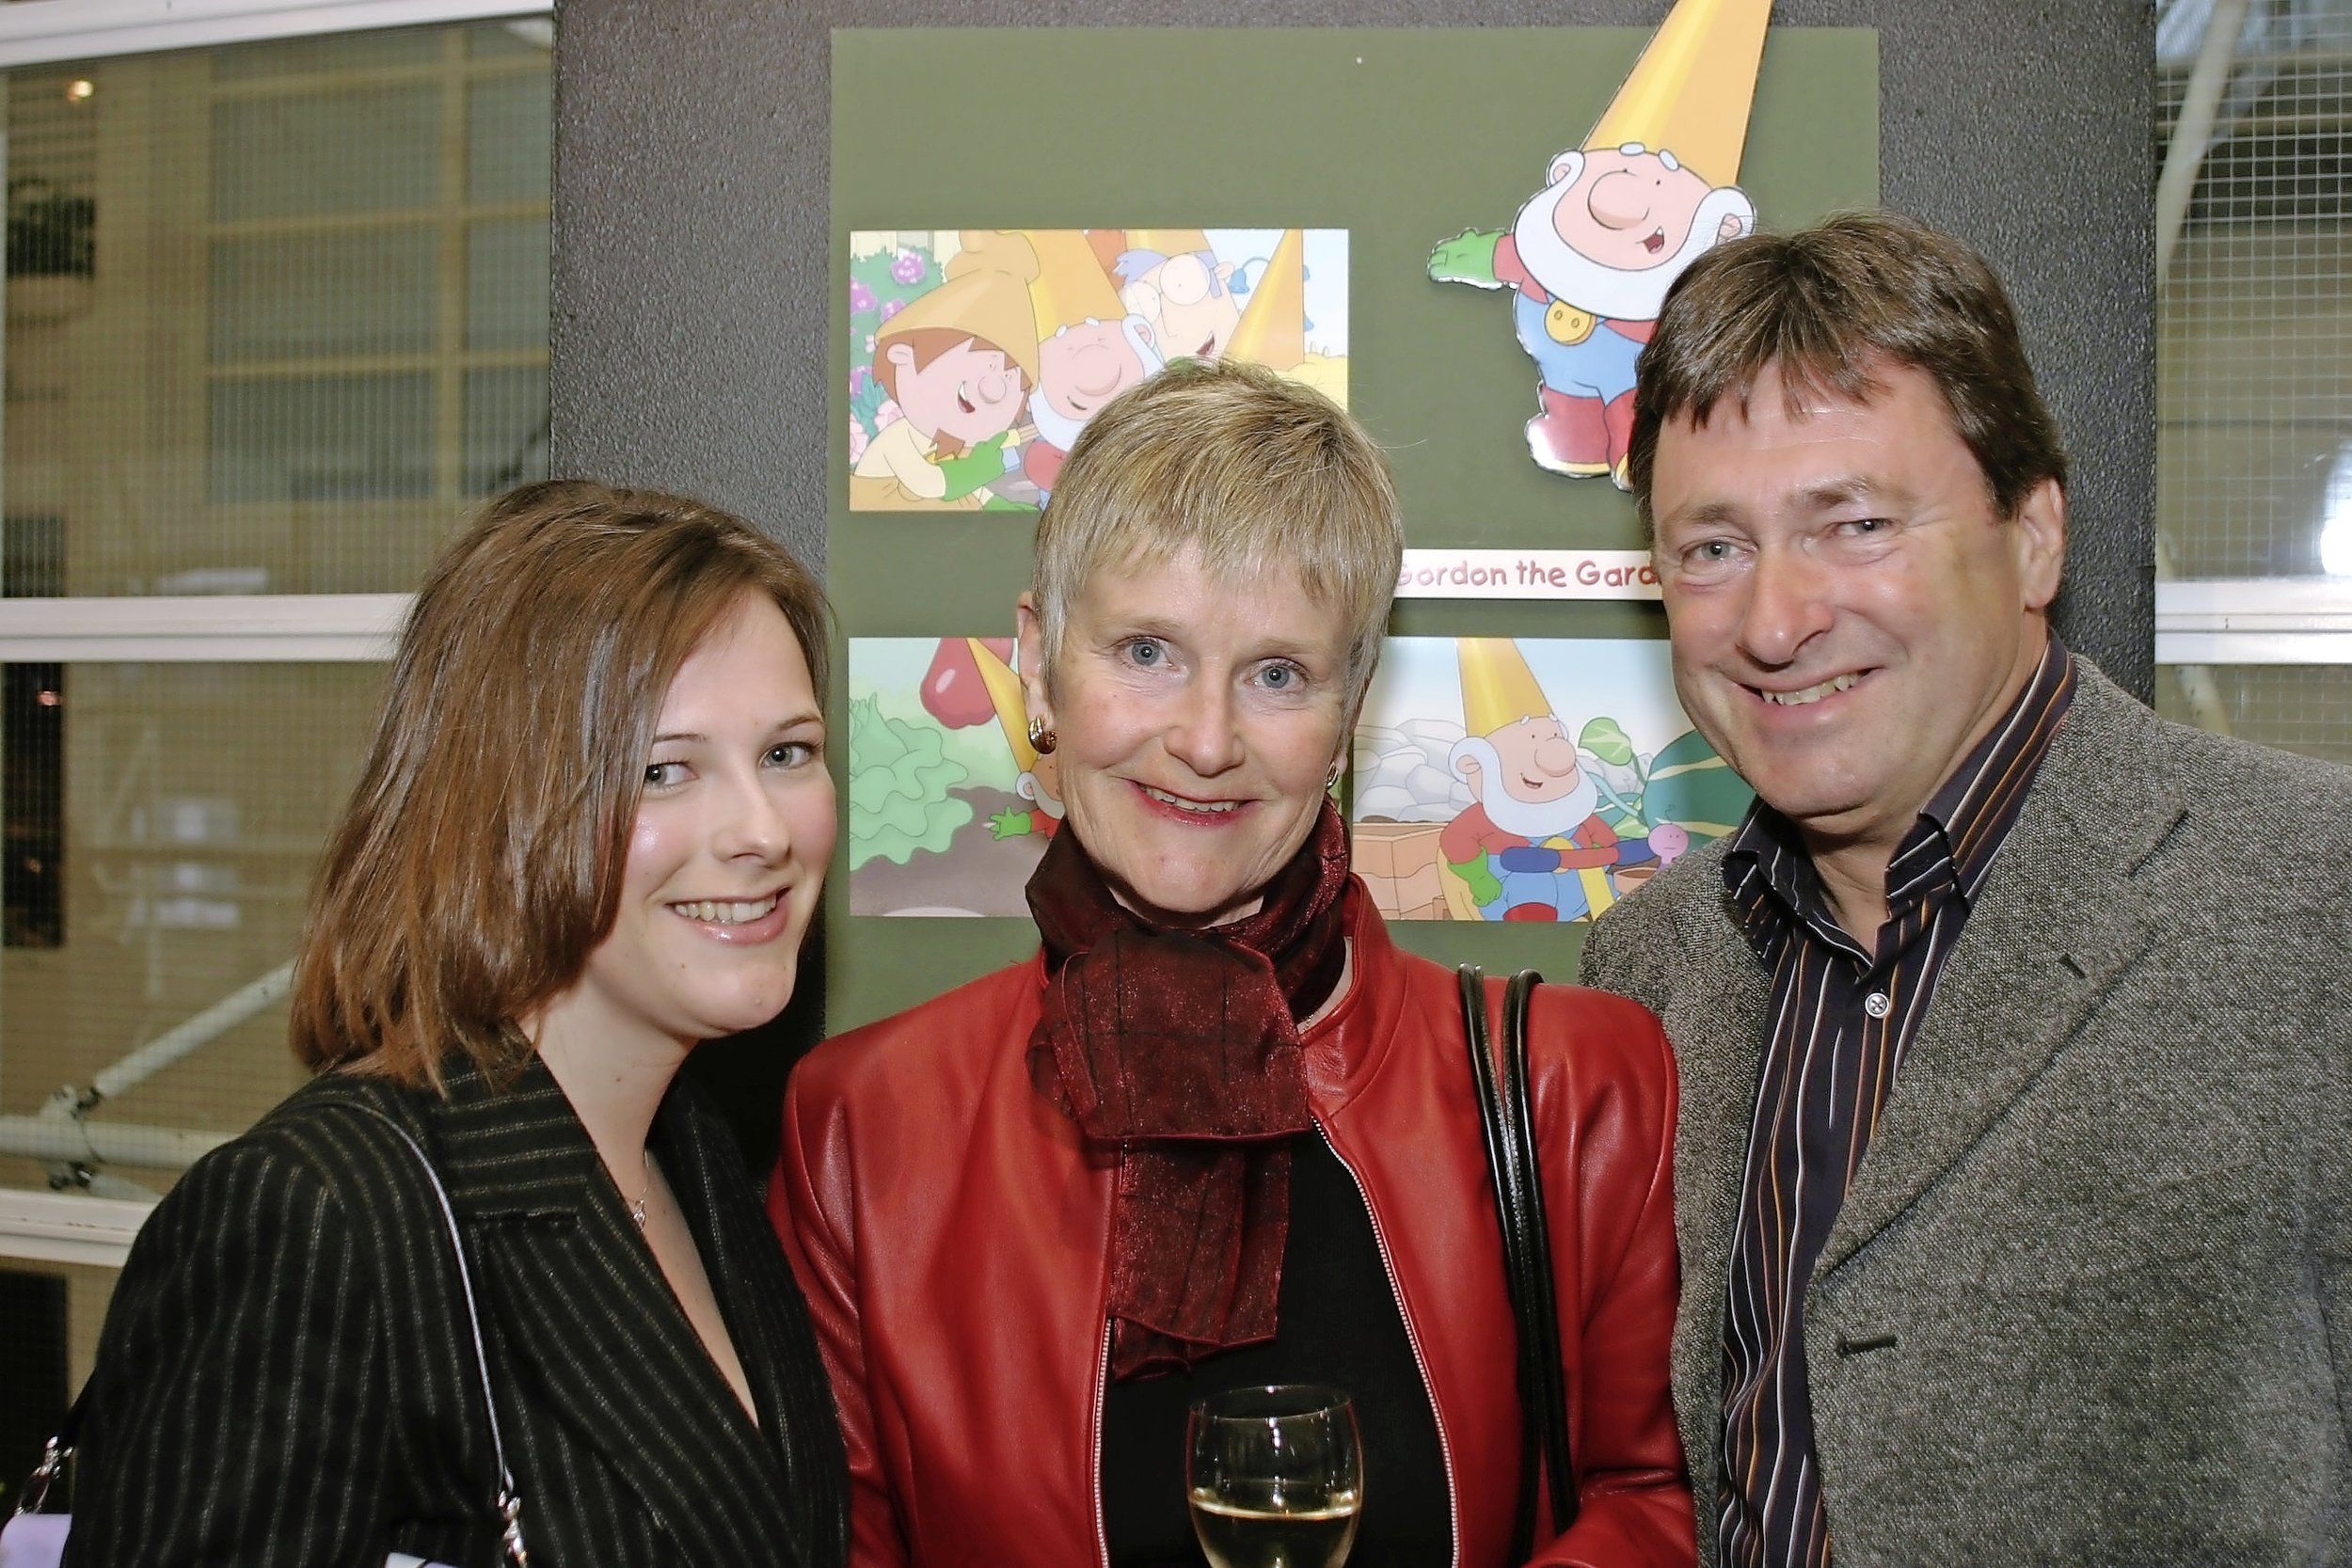 IDS 02777445_Alan Titchmarsh with his wife Alison and daughter Camilla in 2005.jpg